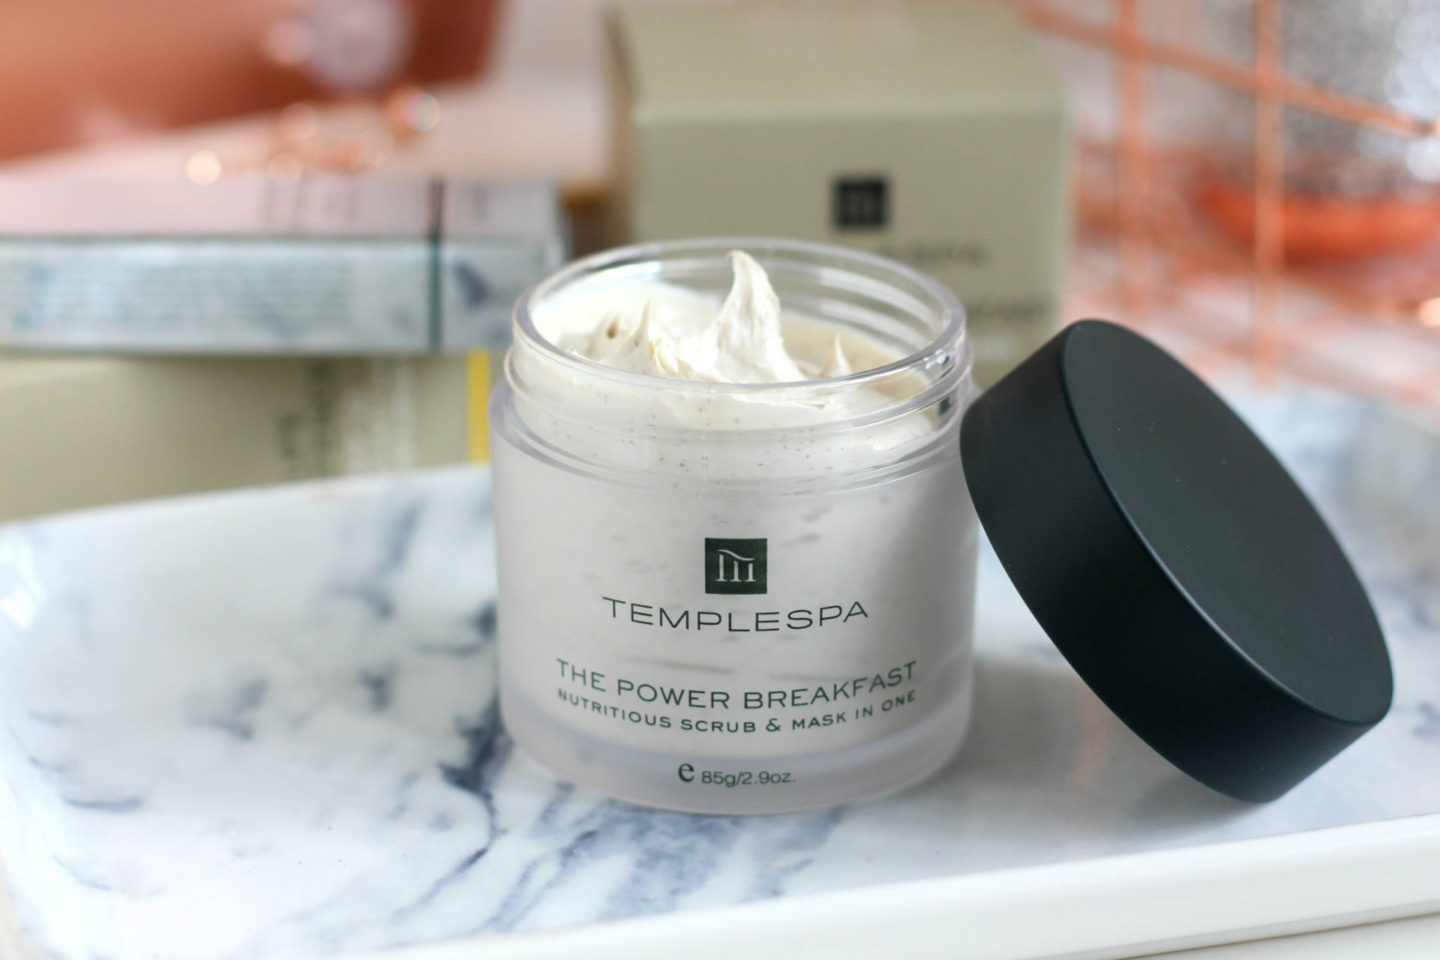 Temple Spa The Power Breakfast Nutritious Scrub & Mask